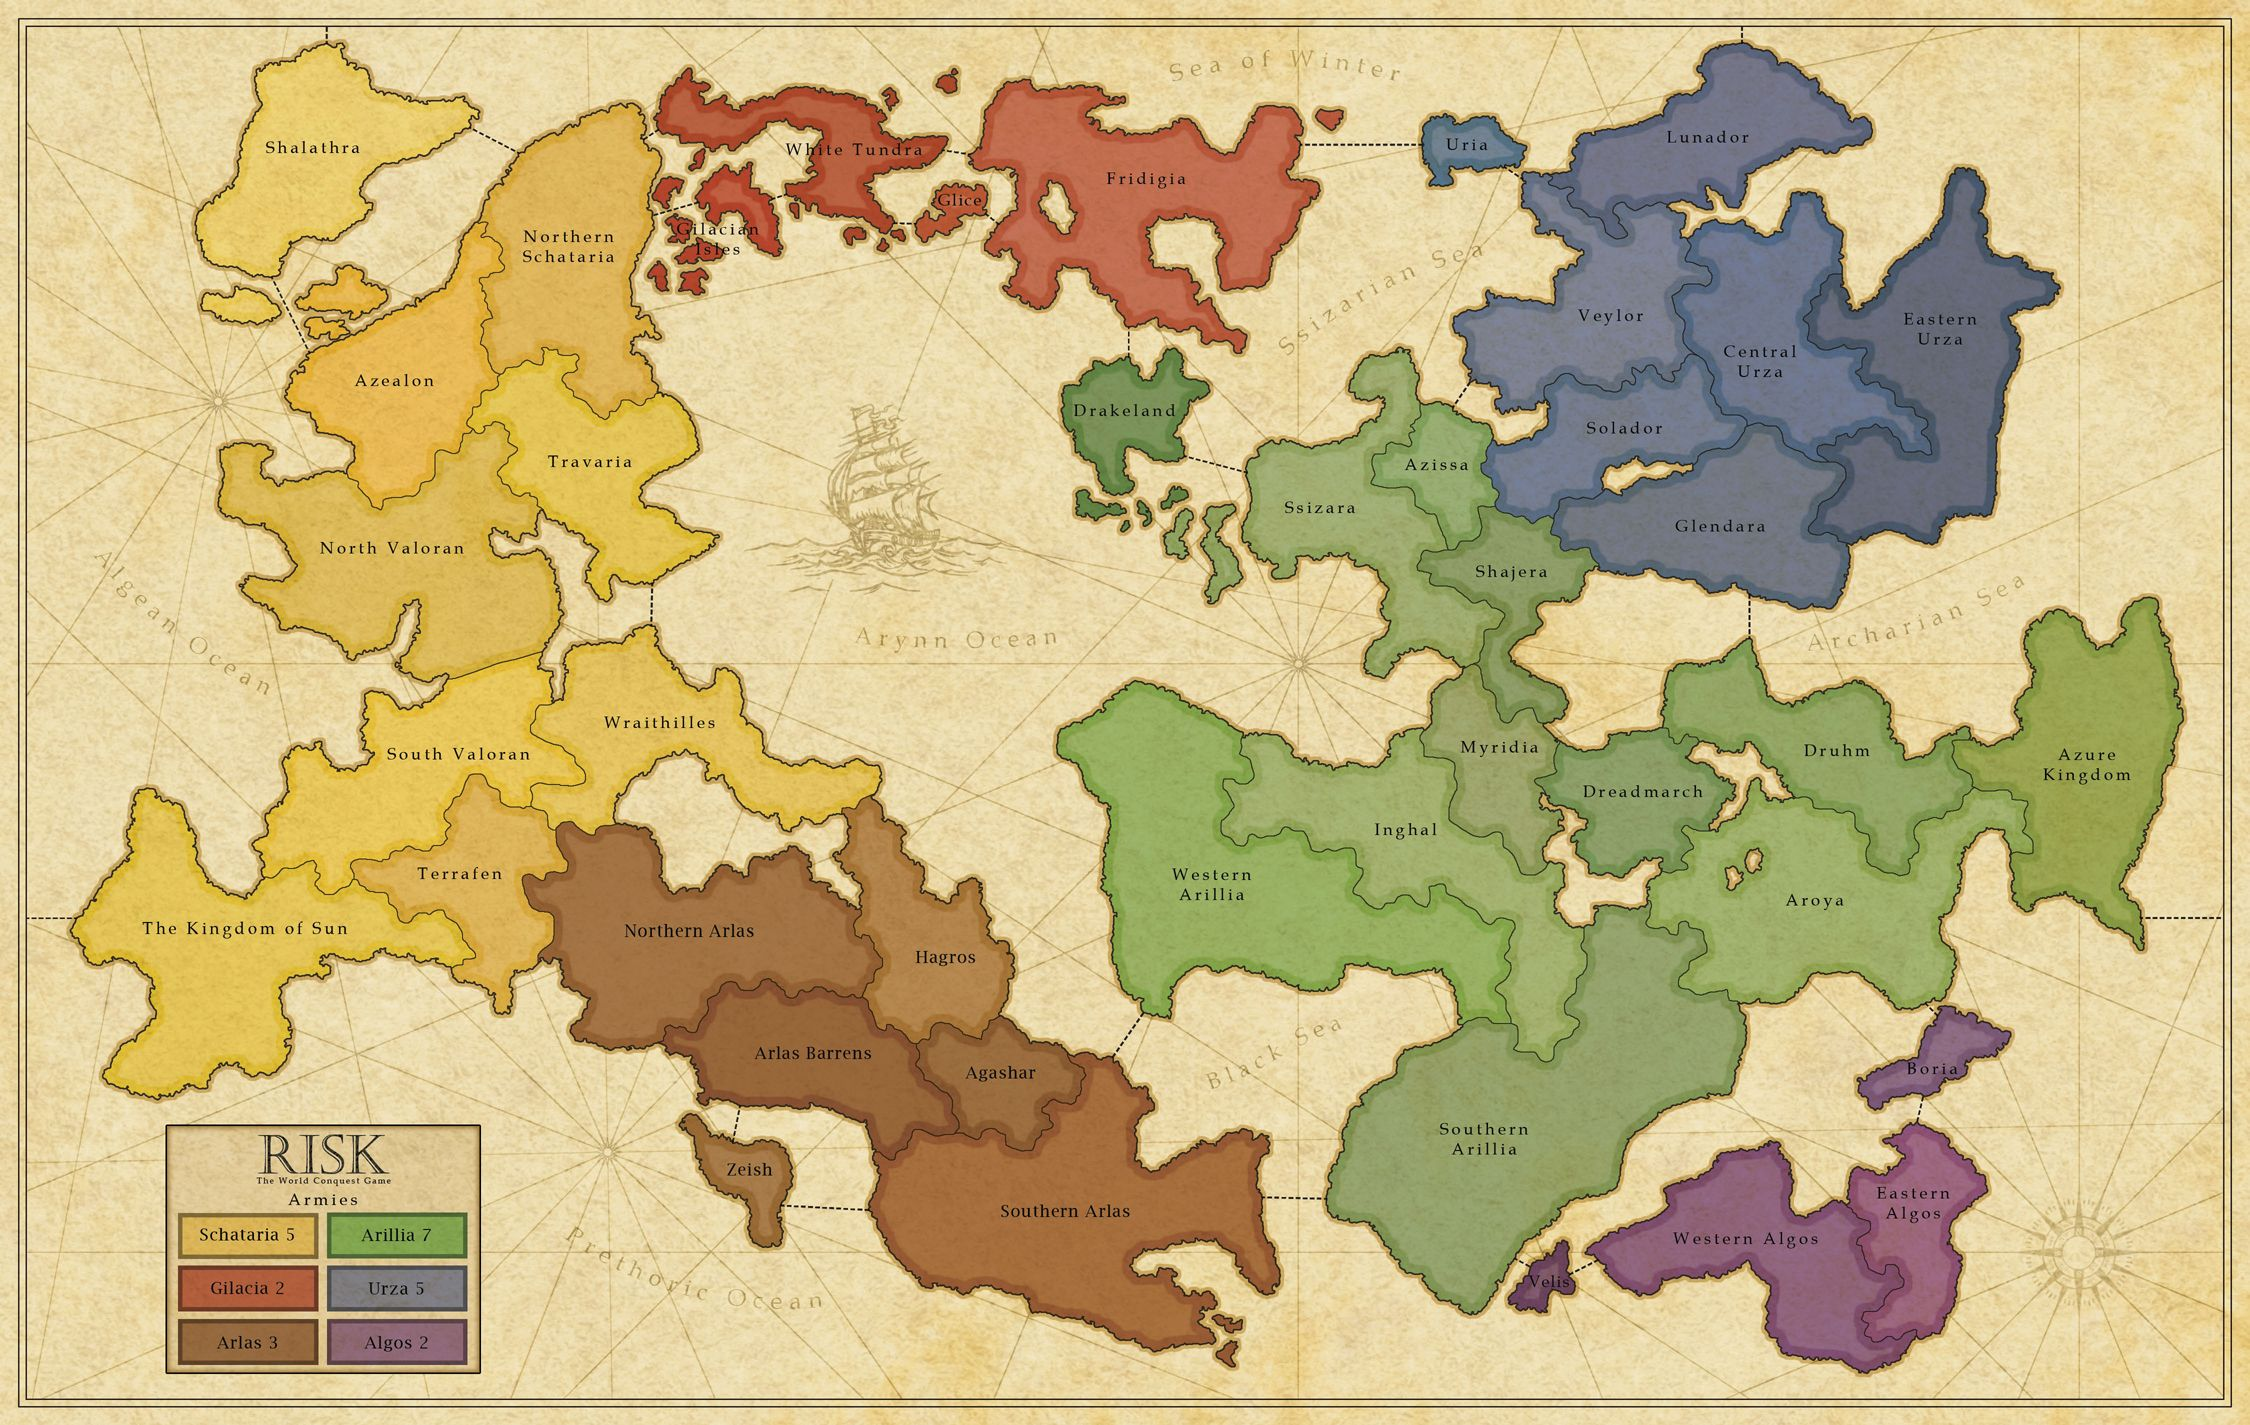 Risk Board Game Map Hd Images 3 HD Wallpapers wargames